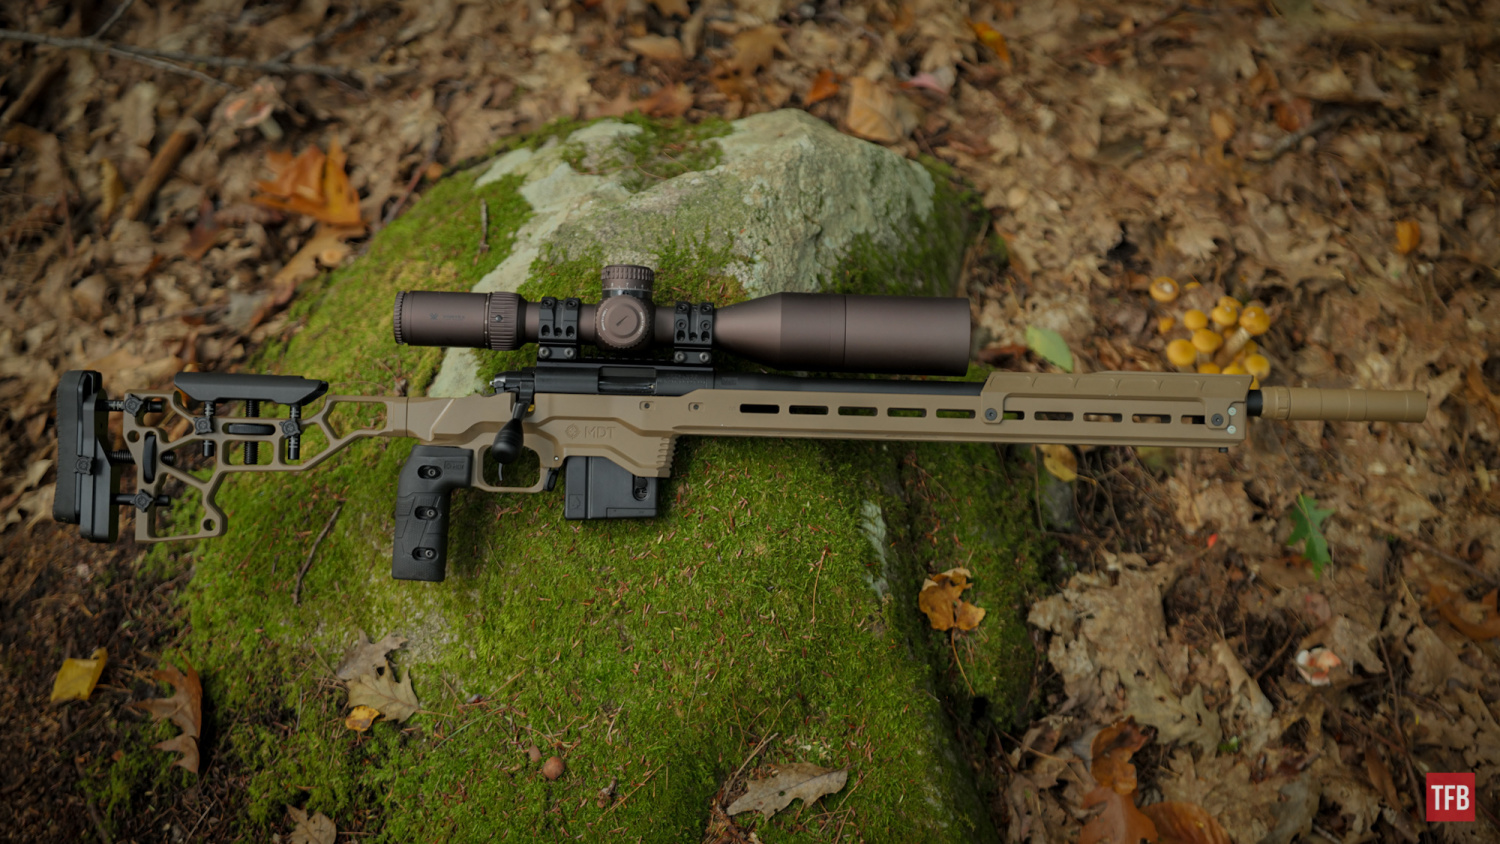 SILENCER SATURDAY #197: Quiet Carry - Rugged Mustang22